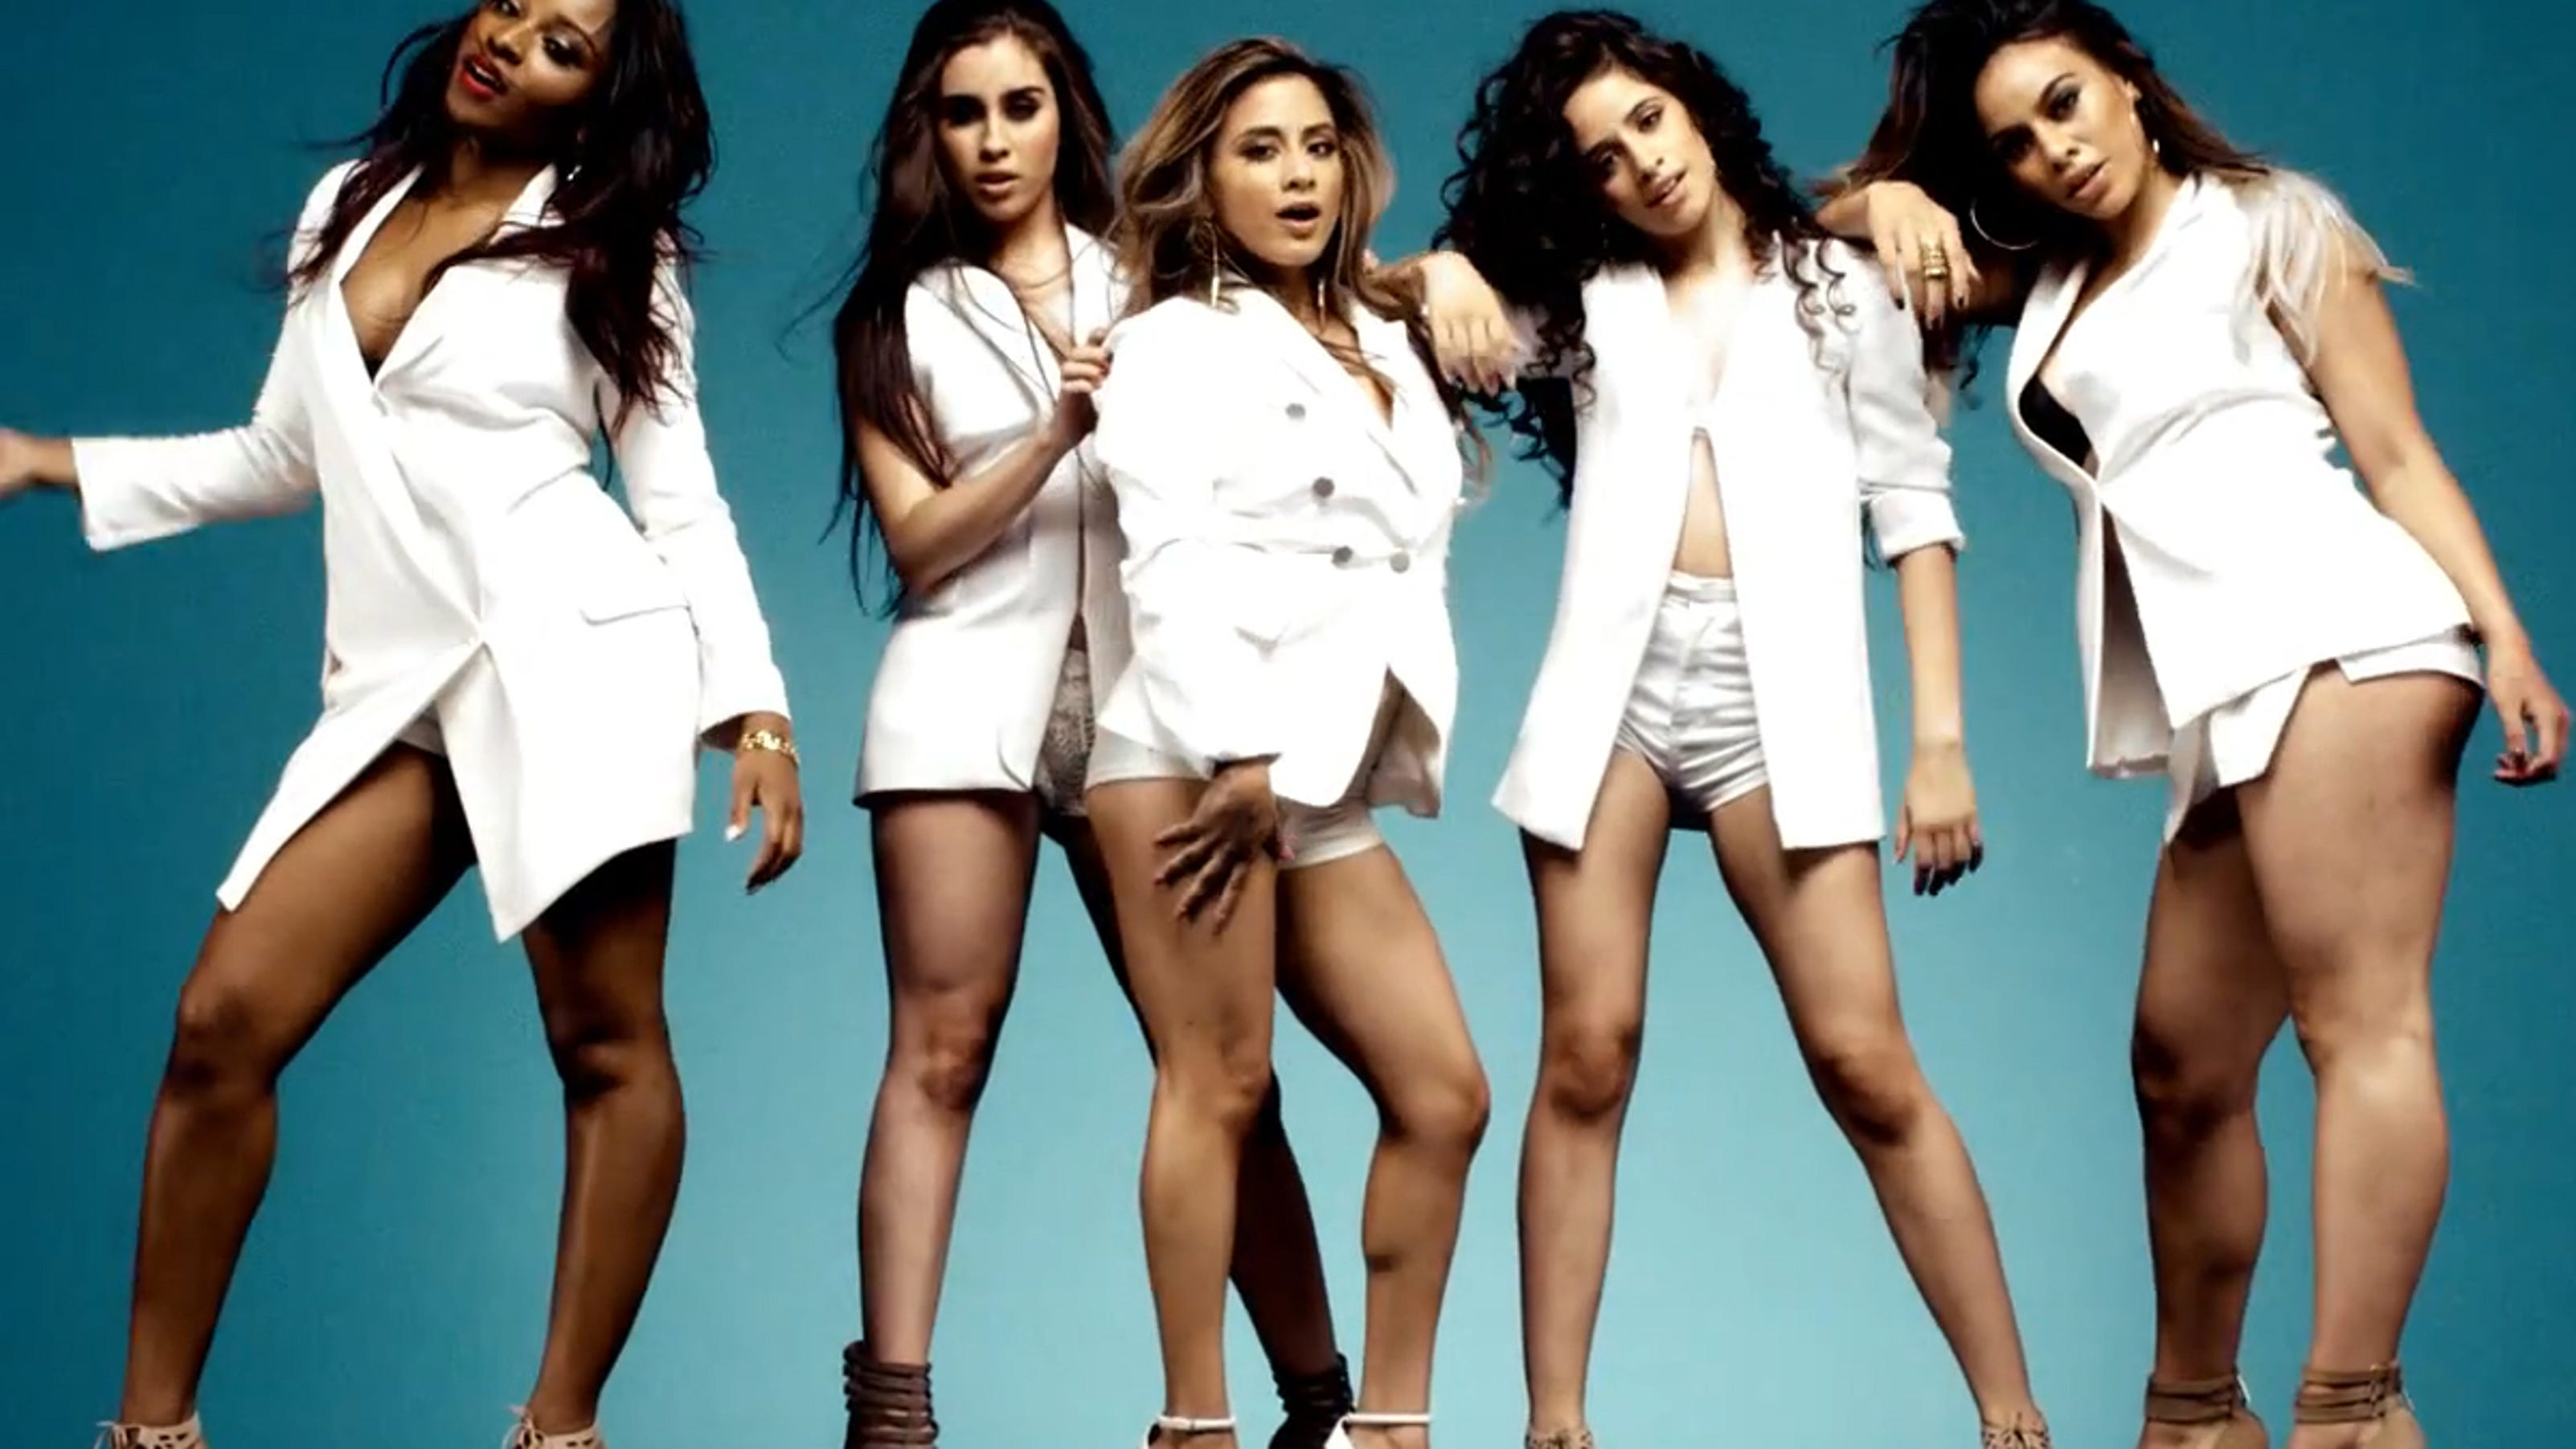 Fifth Harmony Members Names And Ages Photos | Good Pix Gallery